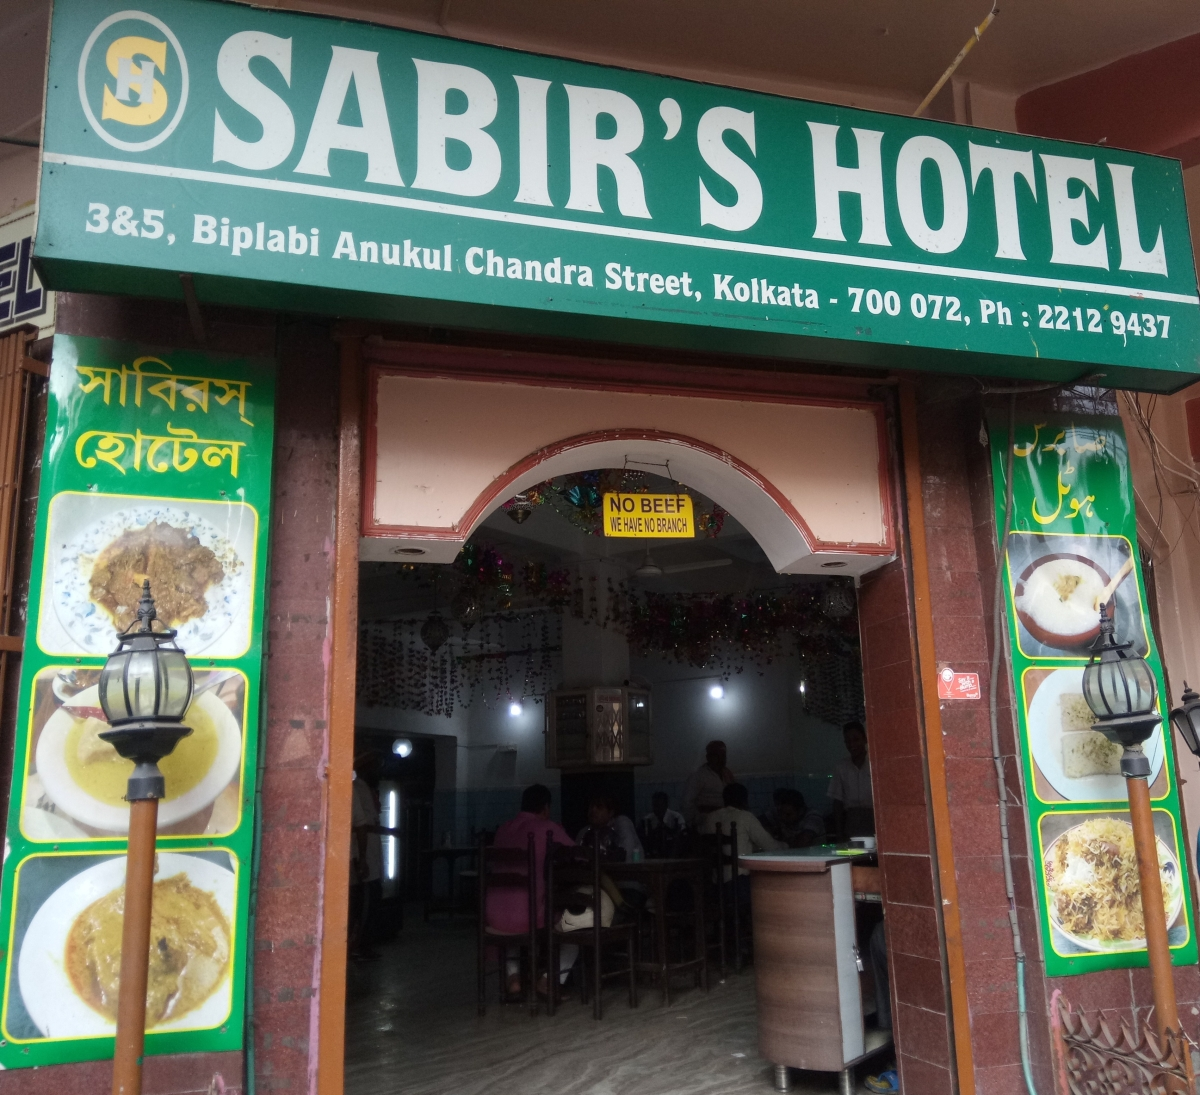 Restaurant review -Why do we still like Sabir's Hotel!